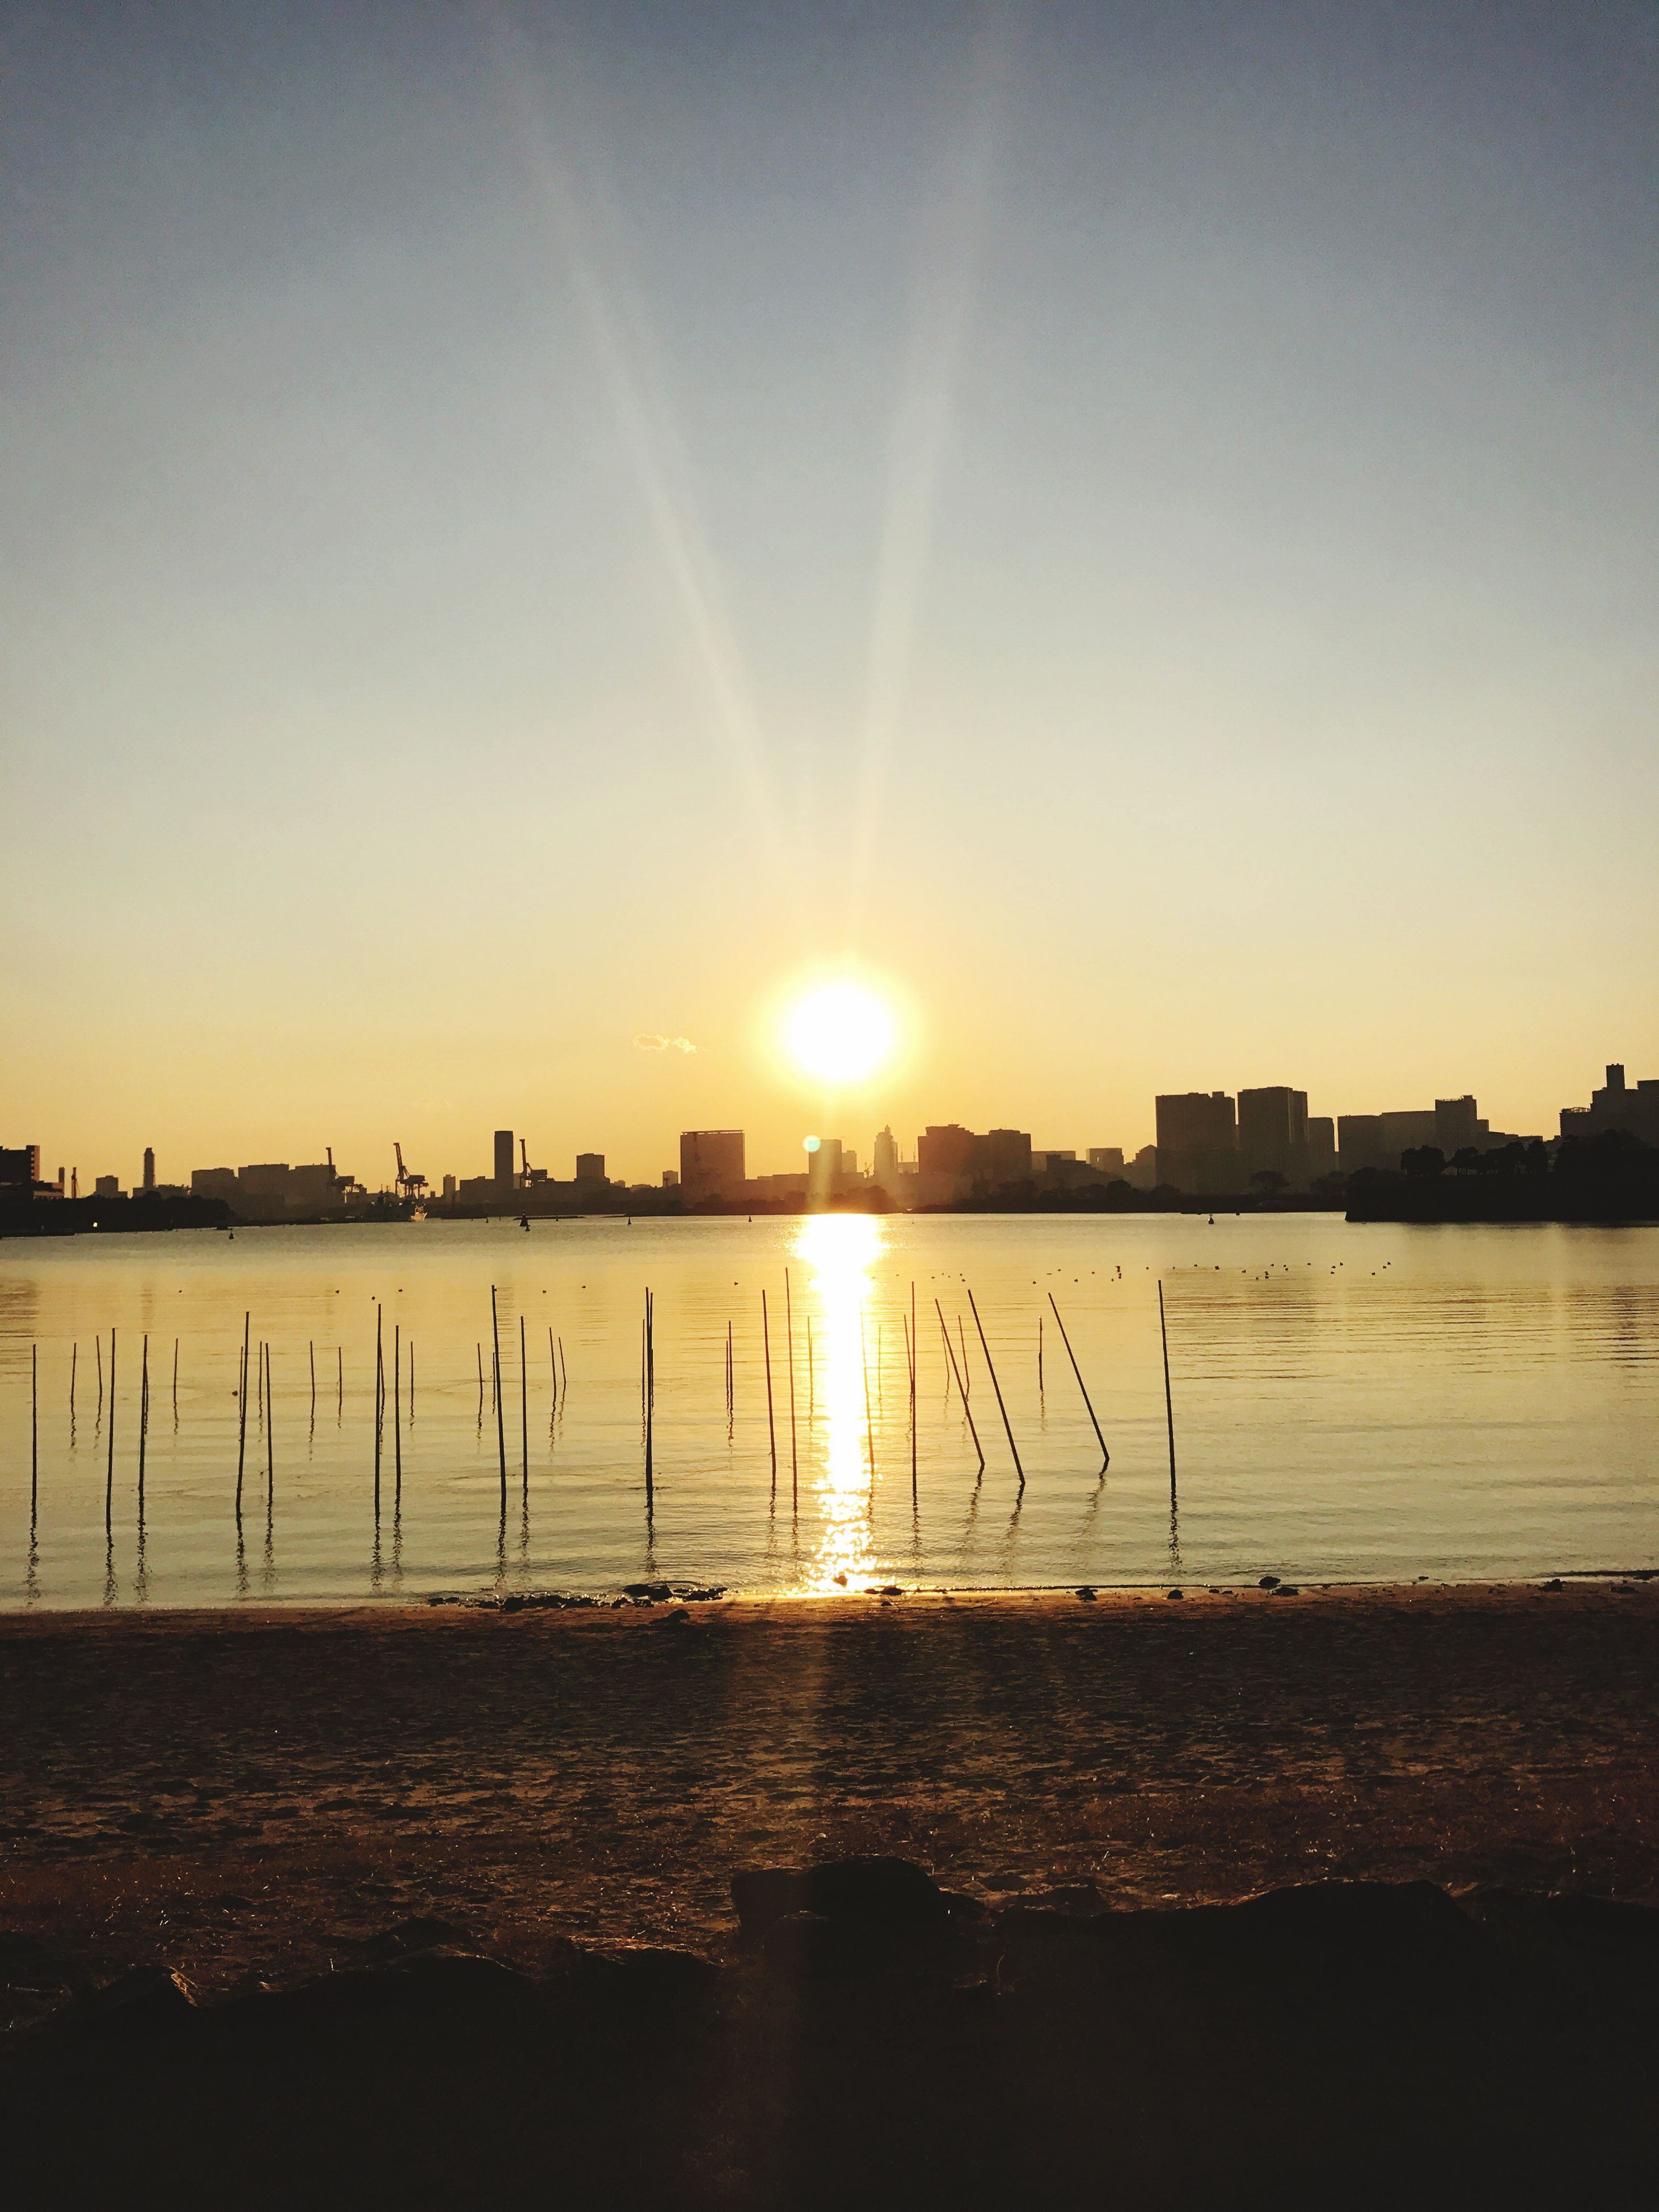 sun, sunset, water, sunbeam, sunlight, beauty in nature, lens flare, nature, sky, built structure, scenics, orange color, building exterior, reflection, tranquility, no people, sea, outdoors, tranquil scene, silhouette, architecture, city, vapor trail, day